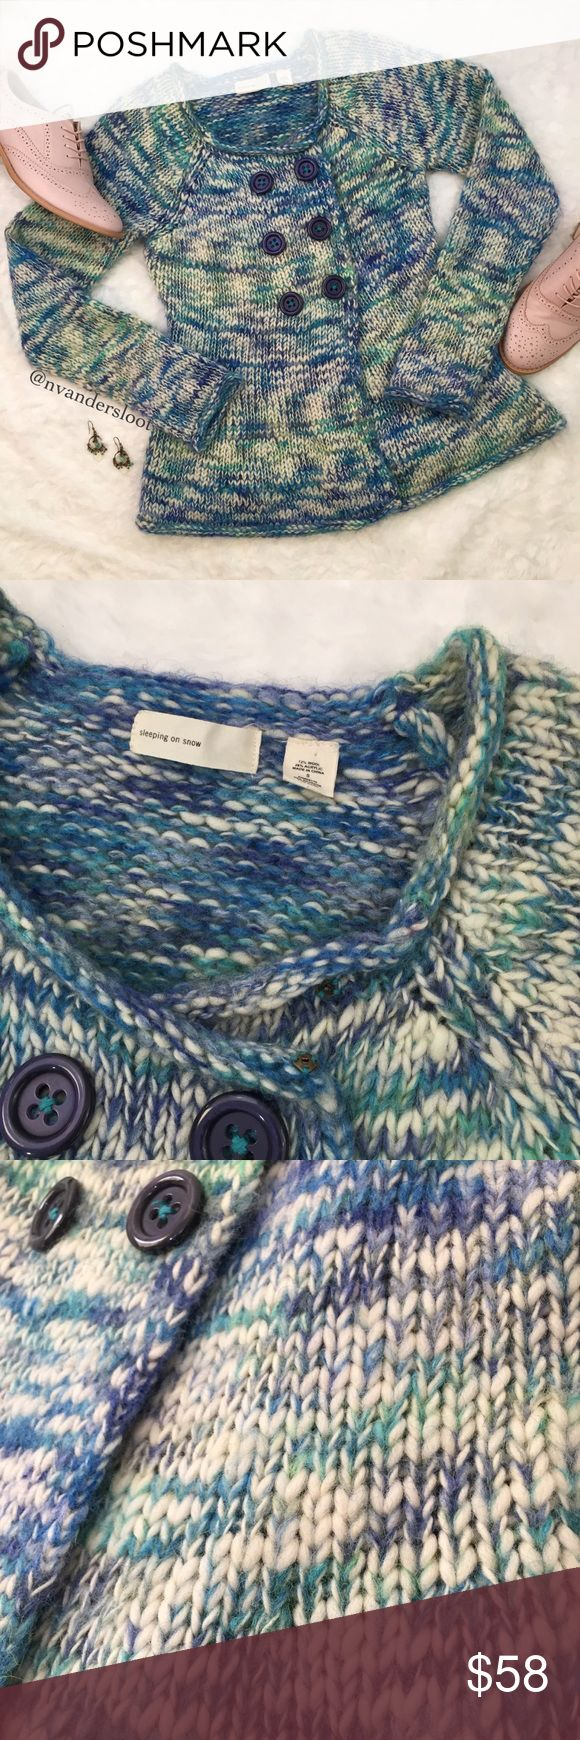 """Anthro Sleeping on Snow sweater ❄️Lovely knit sweater from Anthropologie brand, Sleeping on Snow. 💙💚Blue, green, and cream mix together is this beautiful piece with six buttons to close the sweater and a small button clasp at the neck. Made from 72% wool & 28% acrylic, the sweater measures 15"""" across the chest and 24"""" from shoulder to hemline. No rips or stains. Please see all photos and ask any questions prior to purchasing. *Listing for sweater only. Anthropologie Sweaters"""